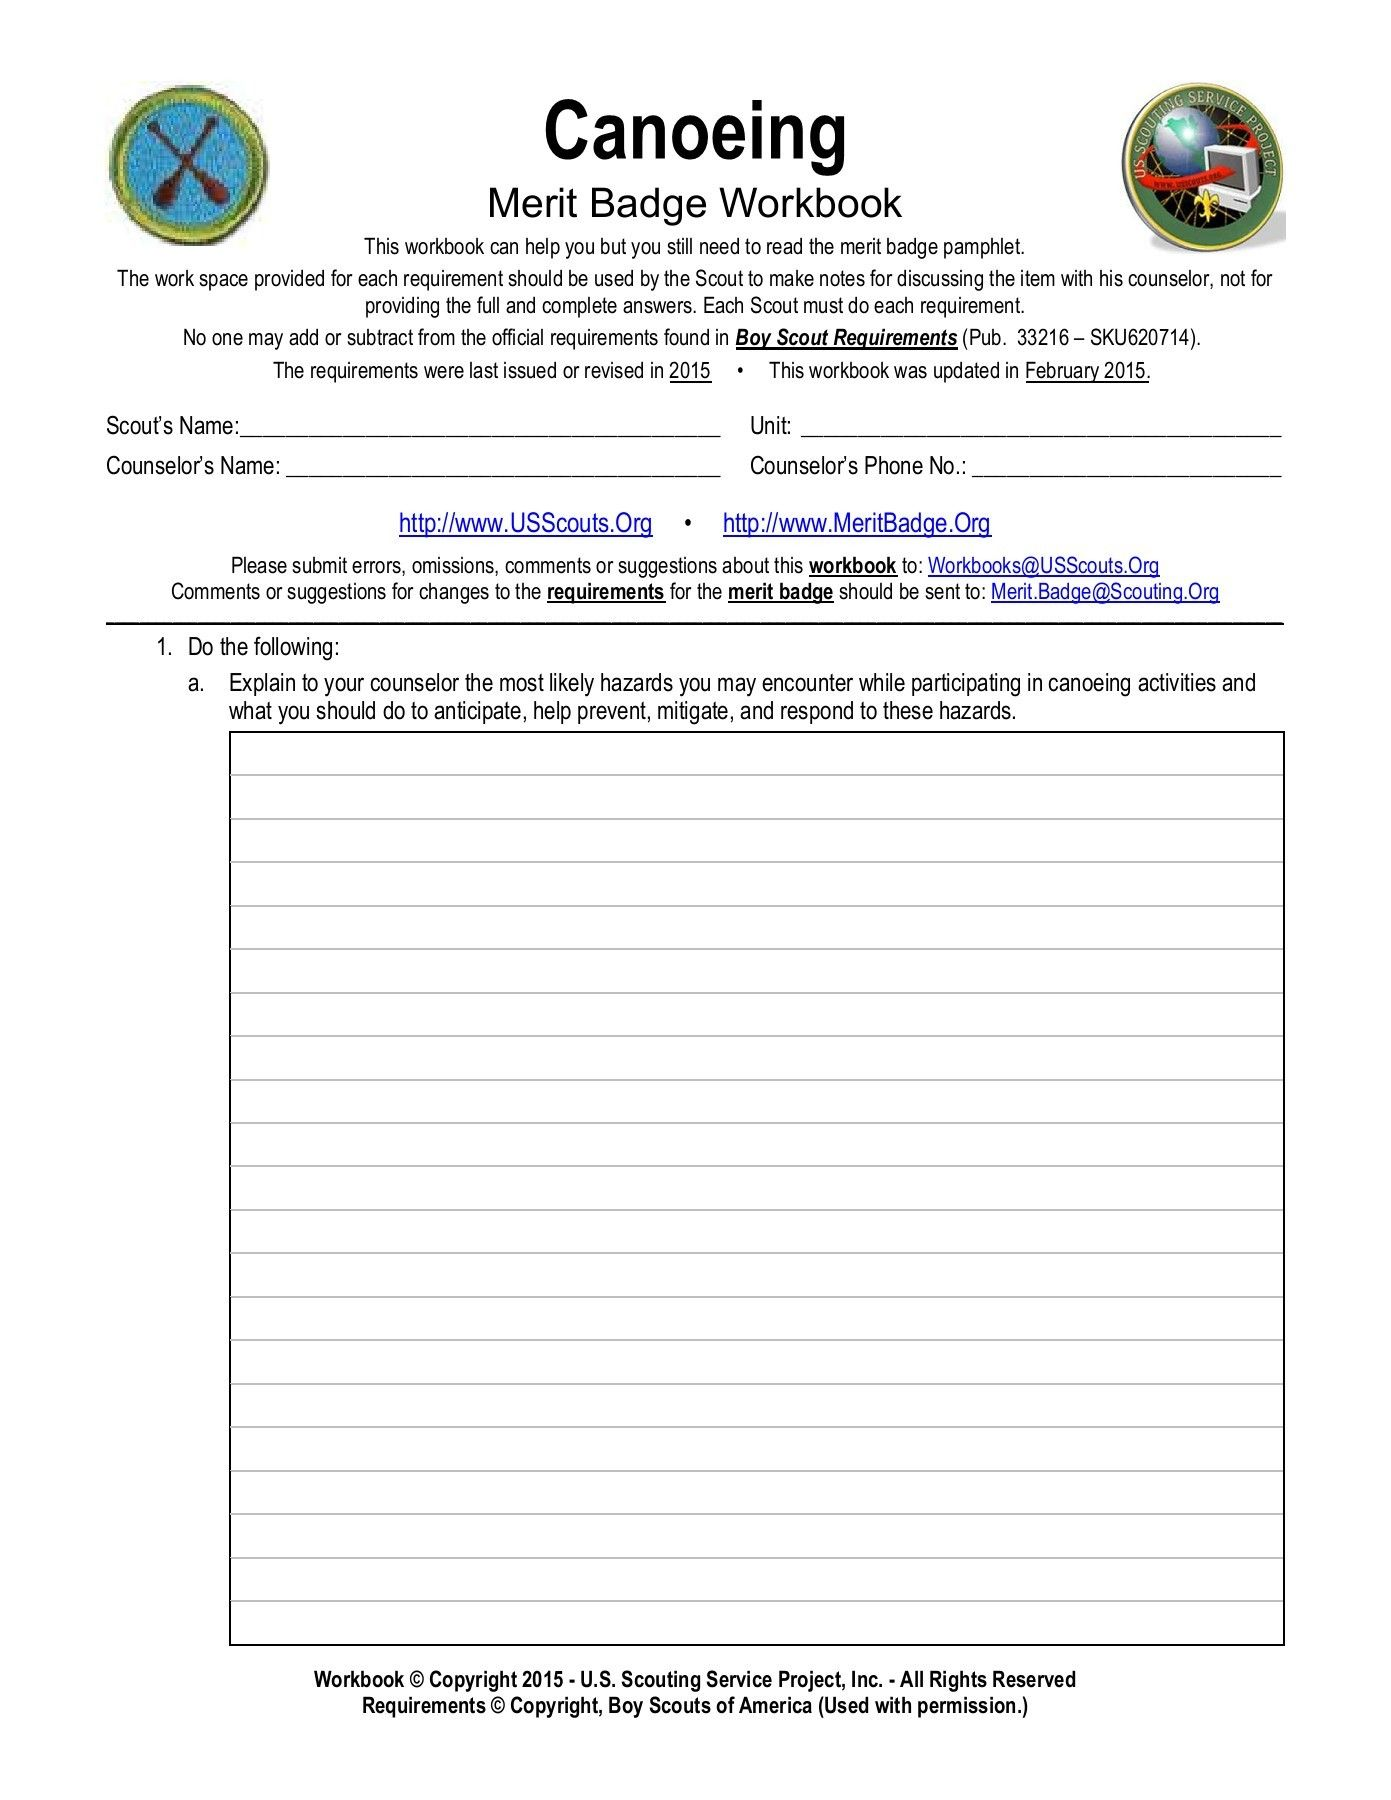 38 Awesome Merit Badge Worksheets Design Ideas